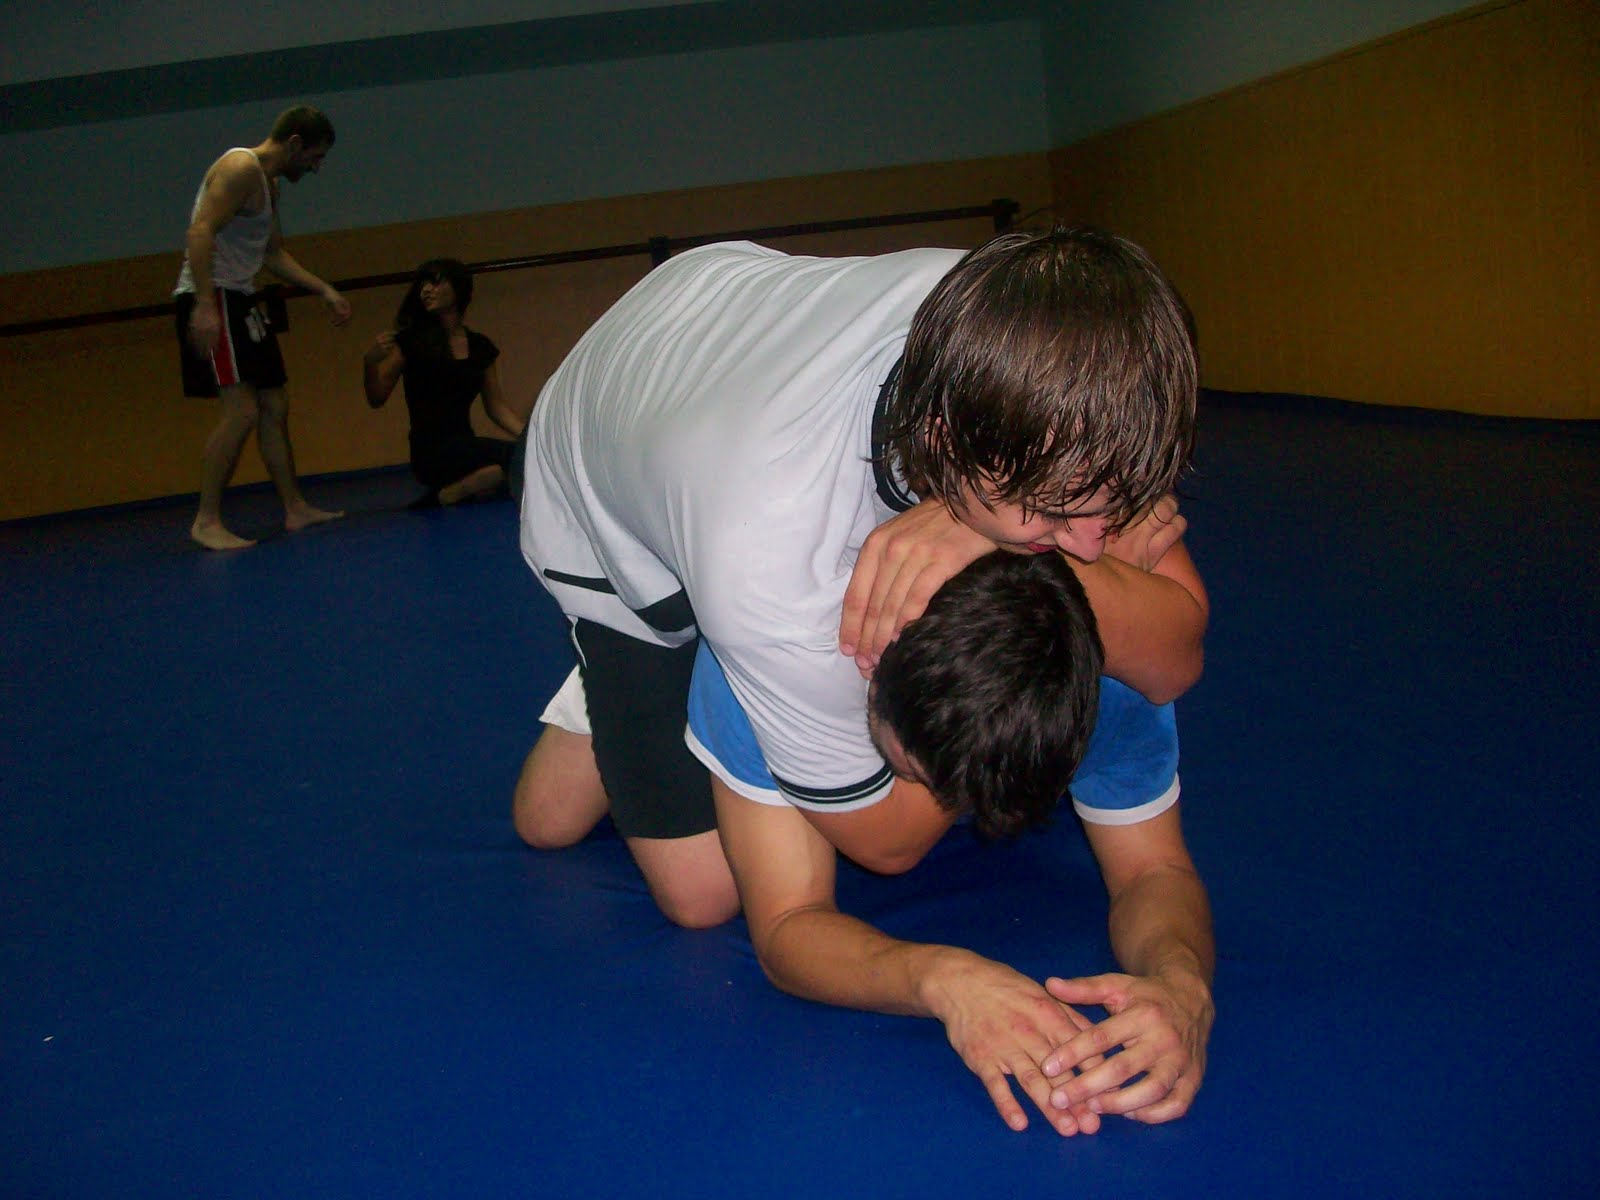 Bandog fight club entrenamiento gimnasio shotokan 02 11 10 for Entrenamiento gimnasio